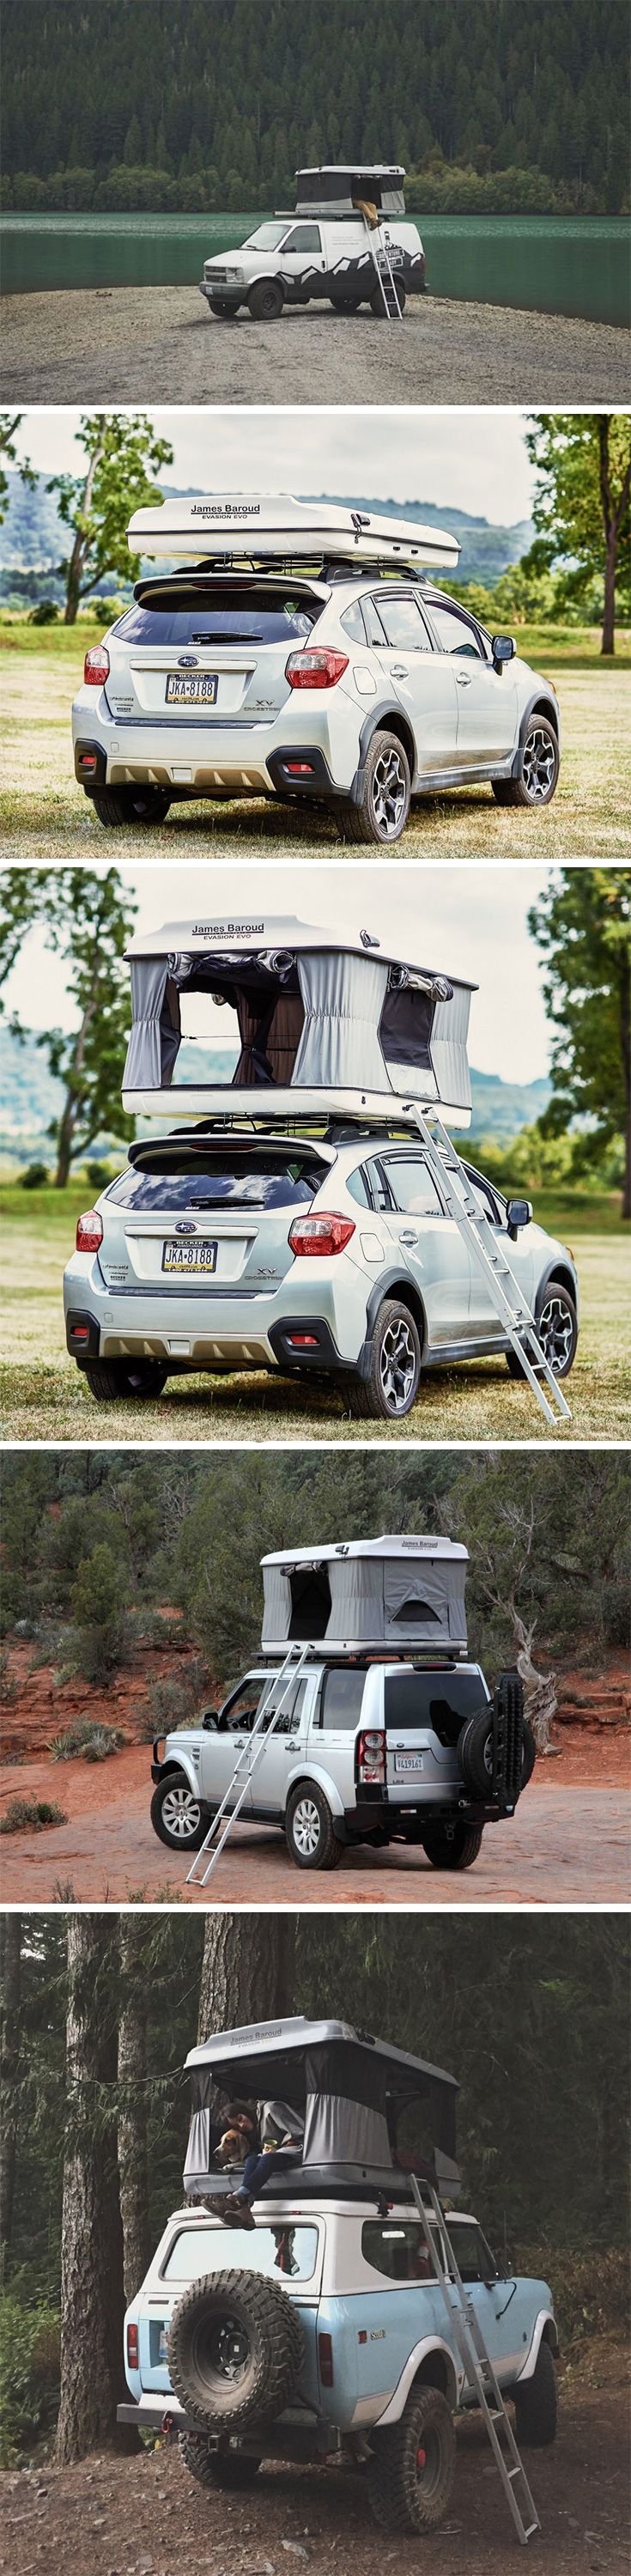 The Evasion Evolution Tent adds a low-footprint high-adventure element to your outdoor trip! Designed like a flat-packed hard mattress that you mount on your SUV or car, the tent opens up through the middle to reveal a cozy space for up to two people on the inside. BUY NOW!